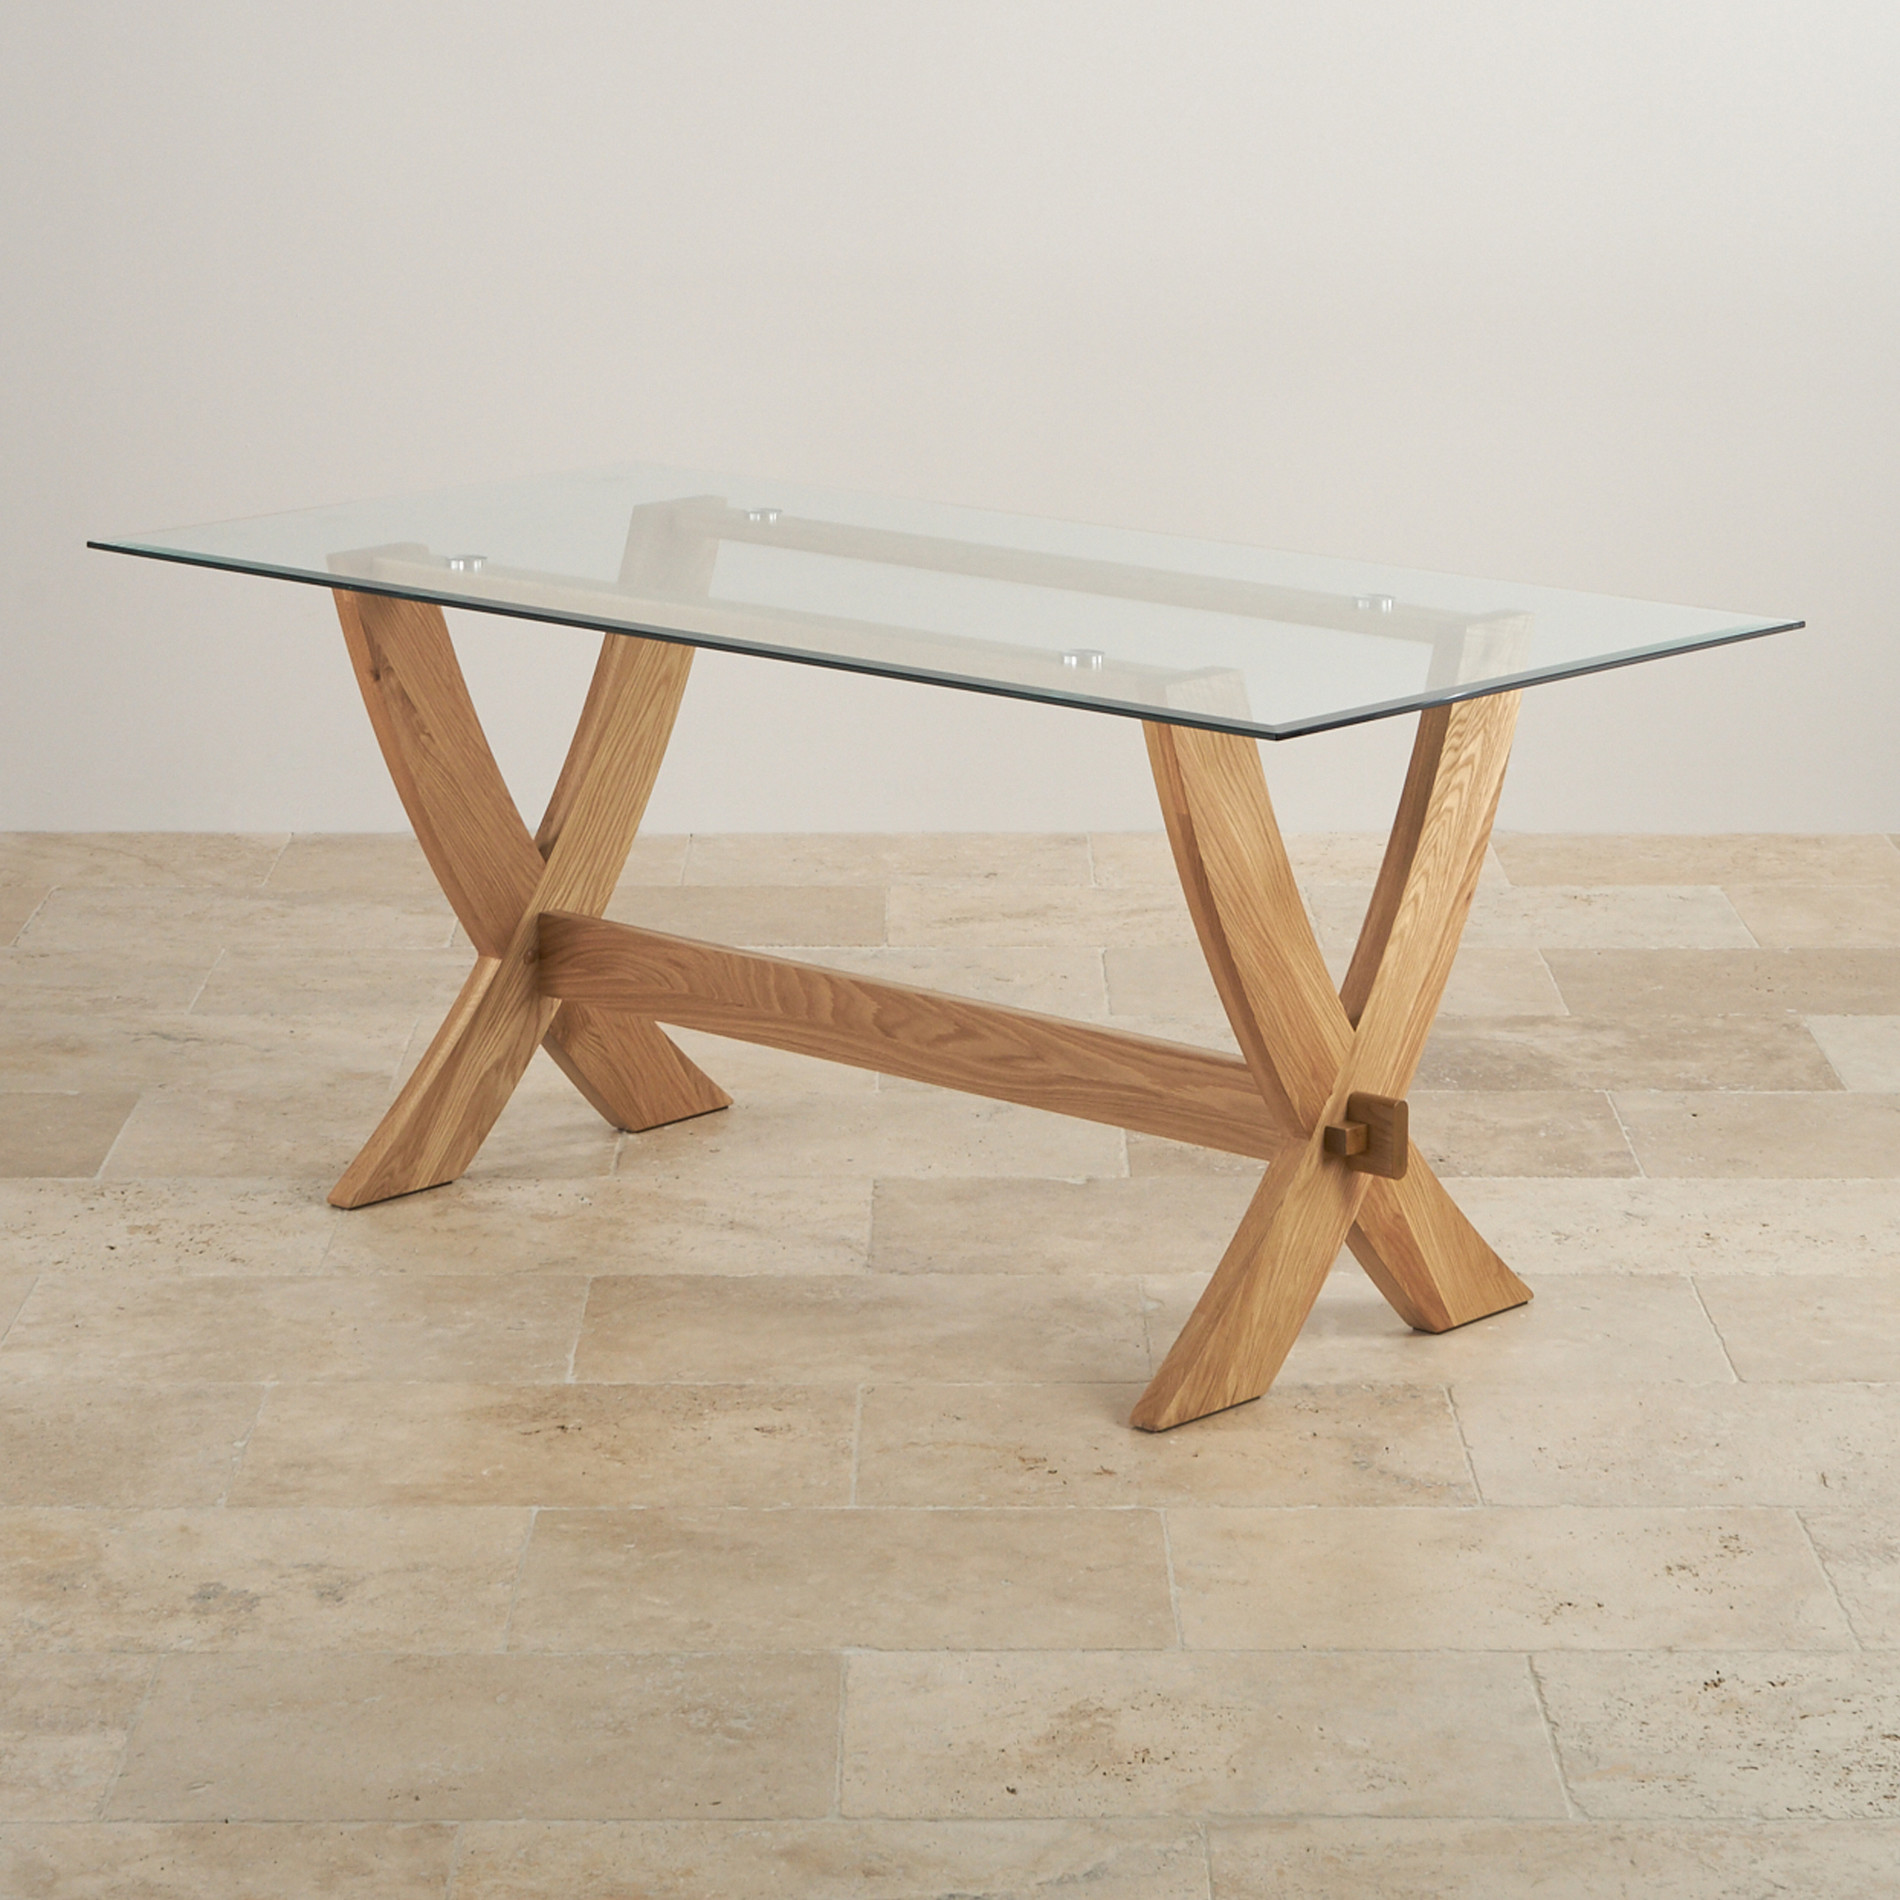 Reflection 6ft x 3ft glass top and natural solid oak crossed leg dining table - Crossed leg dining table ...